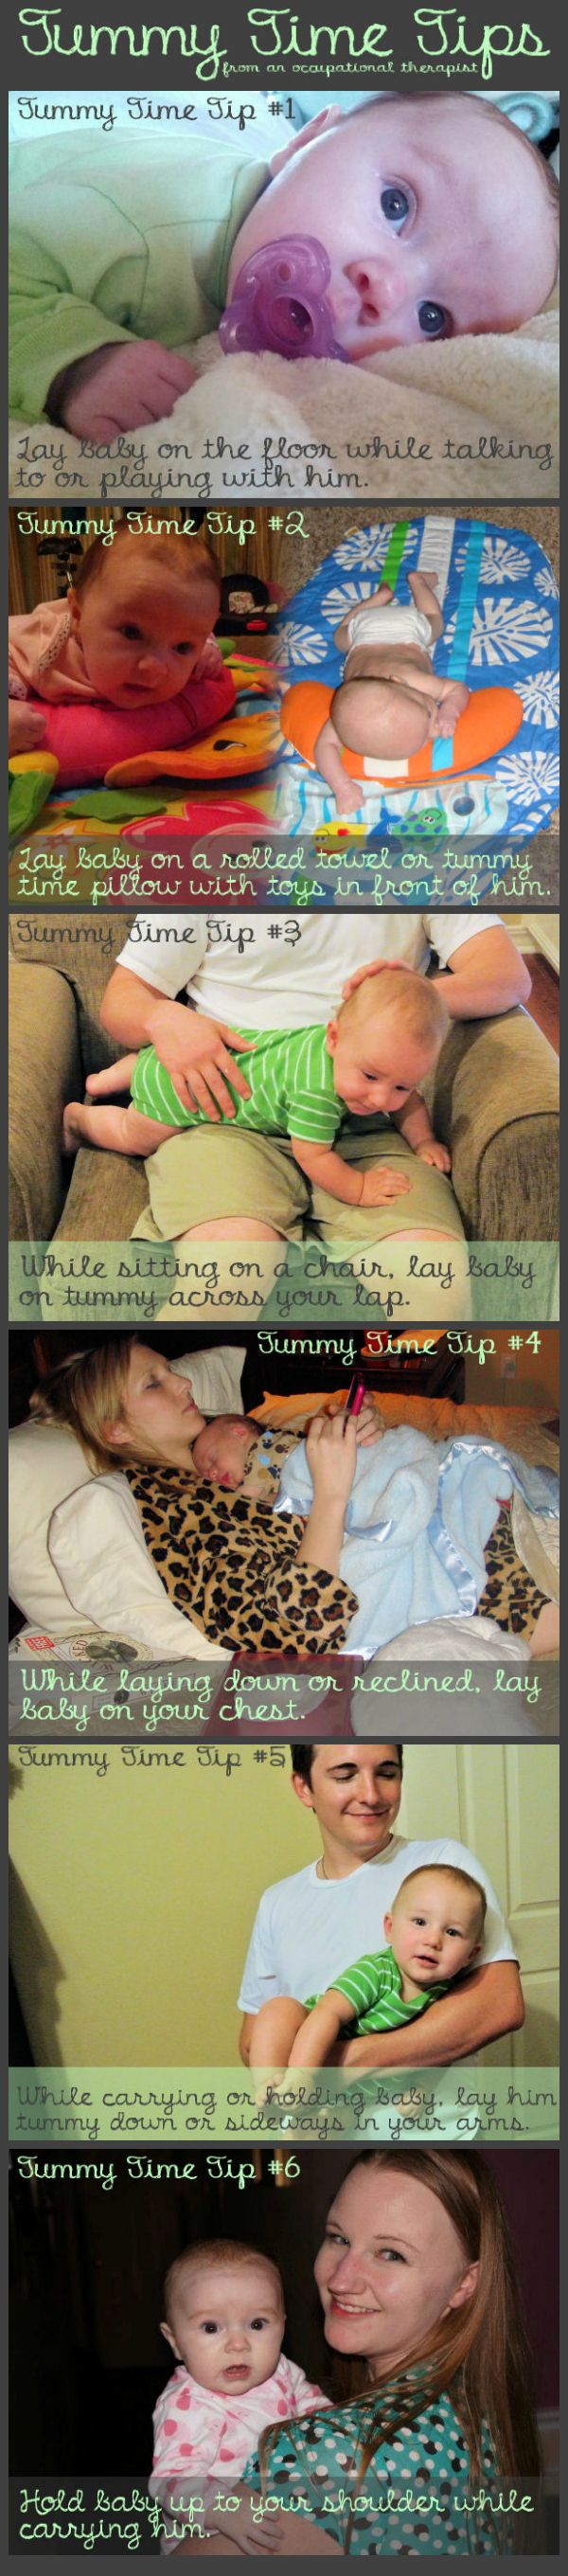 Tummy Time Tips from an Occupational Therapist. Repinned by SOS Inc. Resources @SOS Inc. Resources.